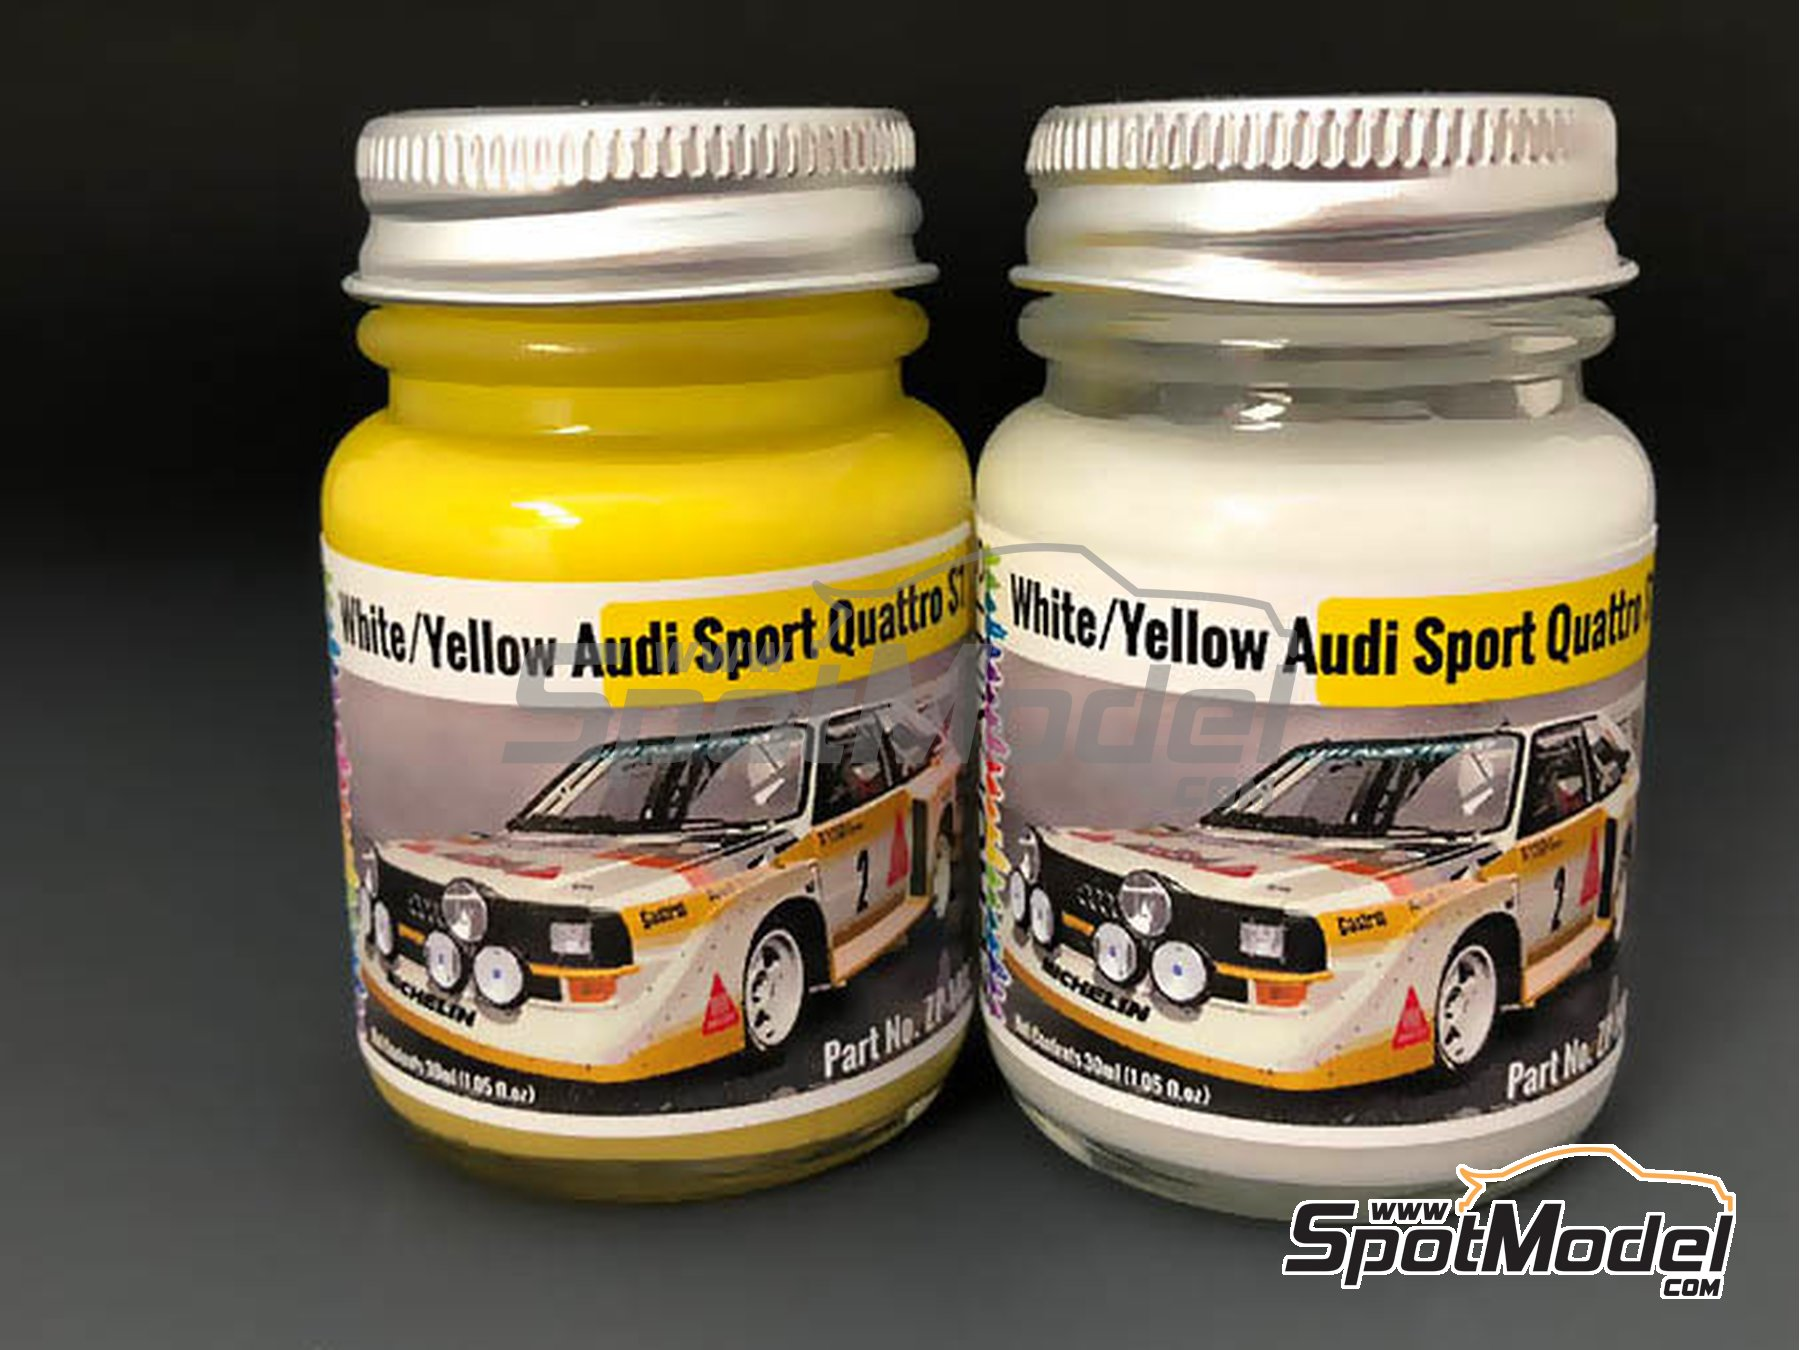 Image 1: Audi Quattro Sport S1 yellow and white | Paints set manufactured by Zero Paints (ref. ZP-1482)